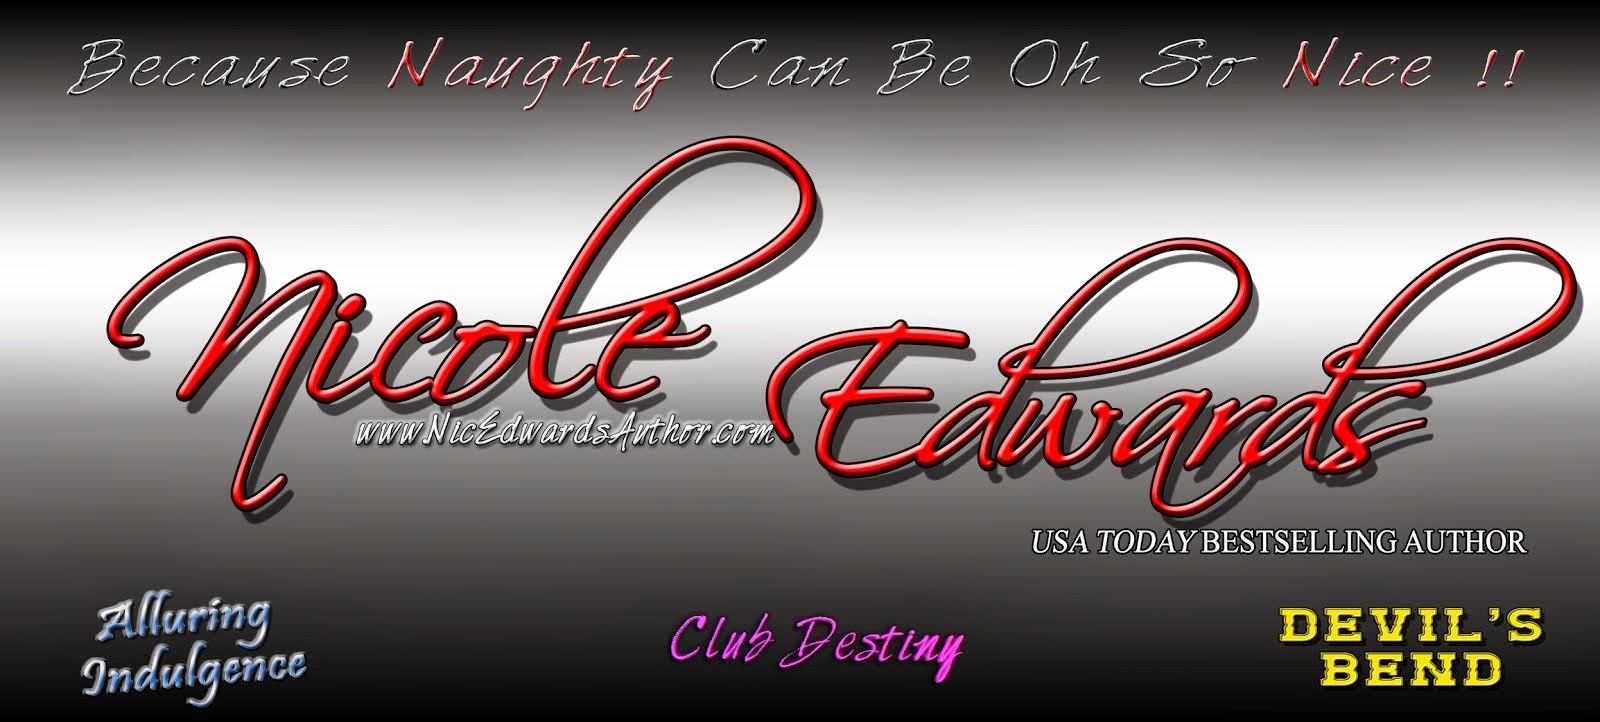 Nicole Edwards - Erotic Romance Author